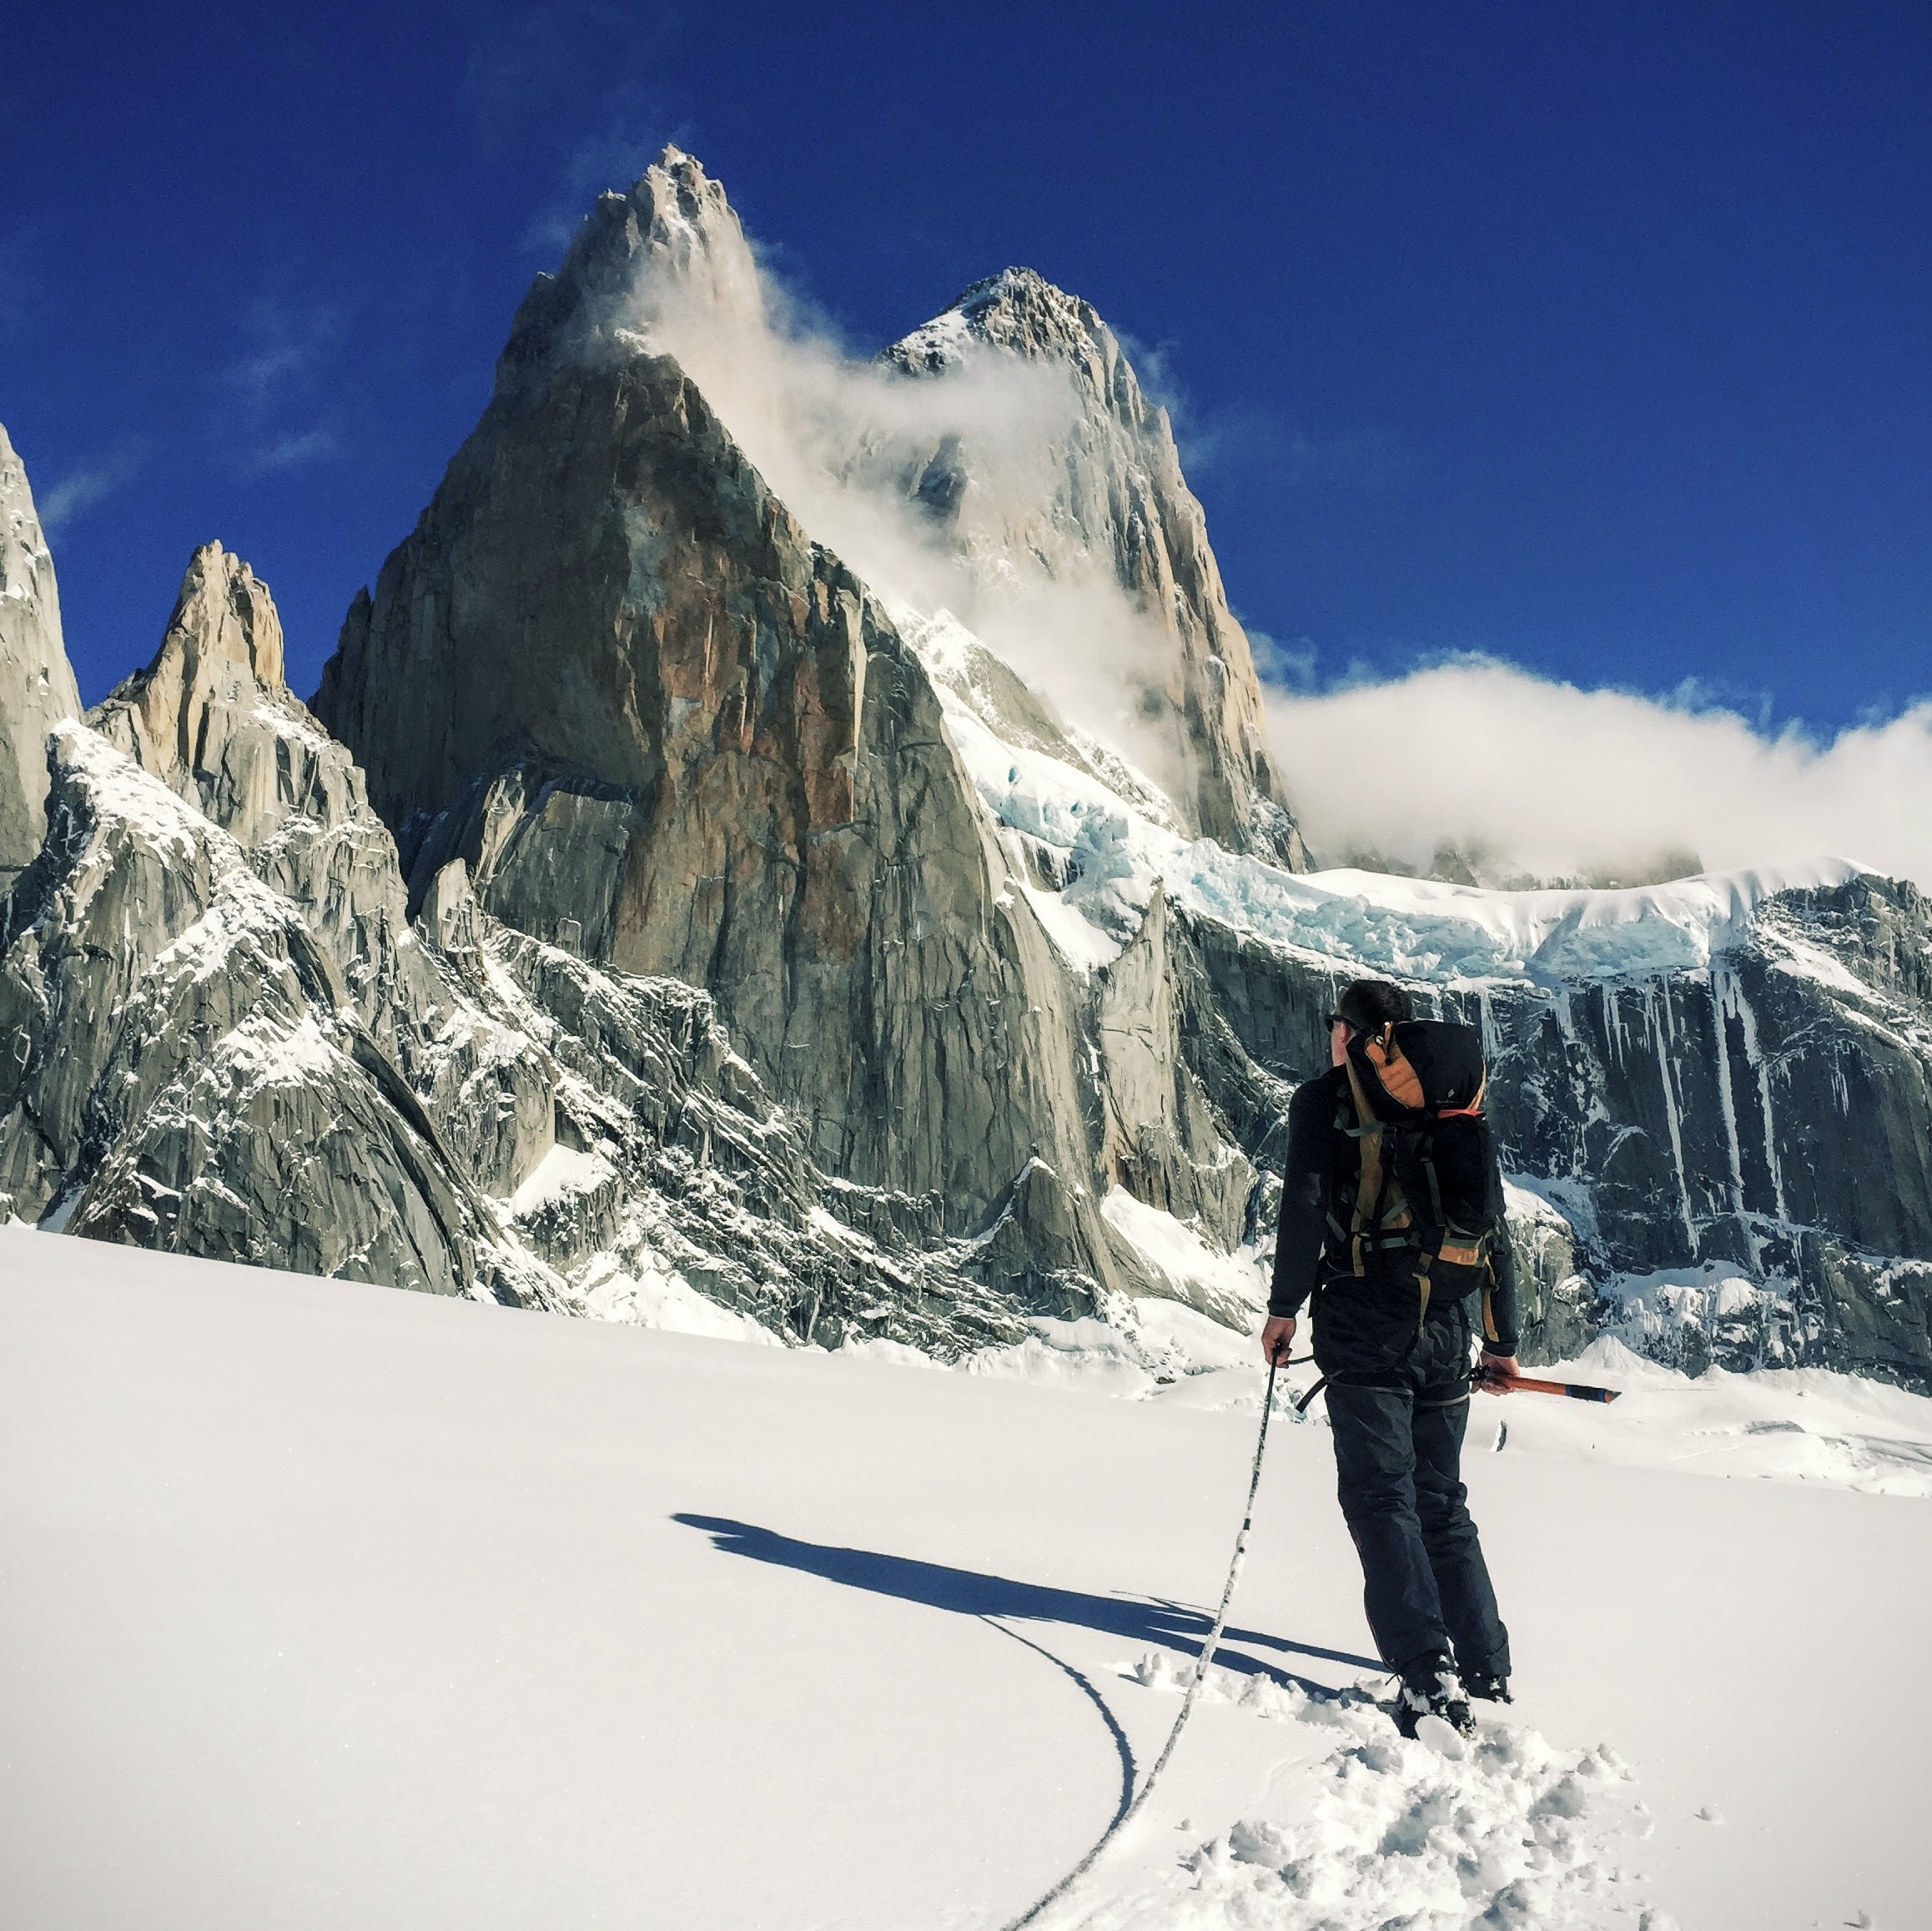 A man with mountaineering gear looks at a steep jagged peak on a snowy day